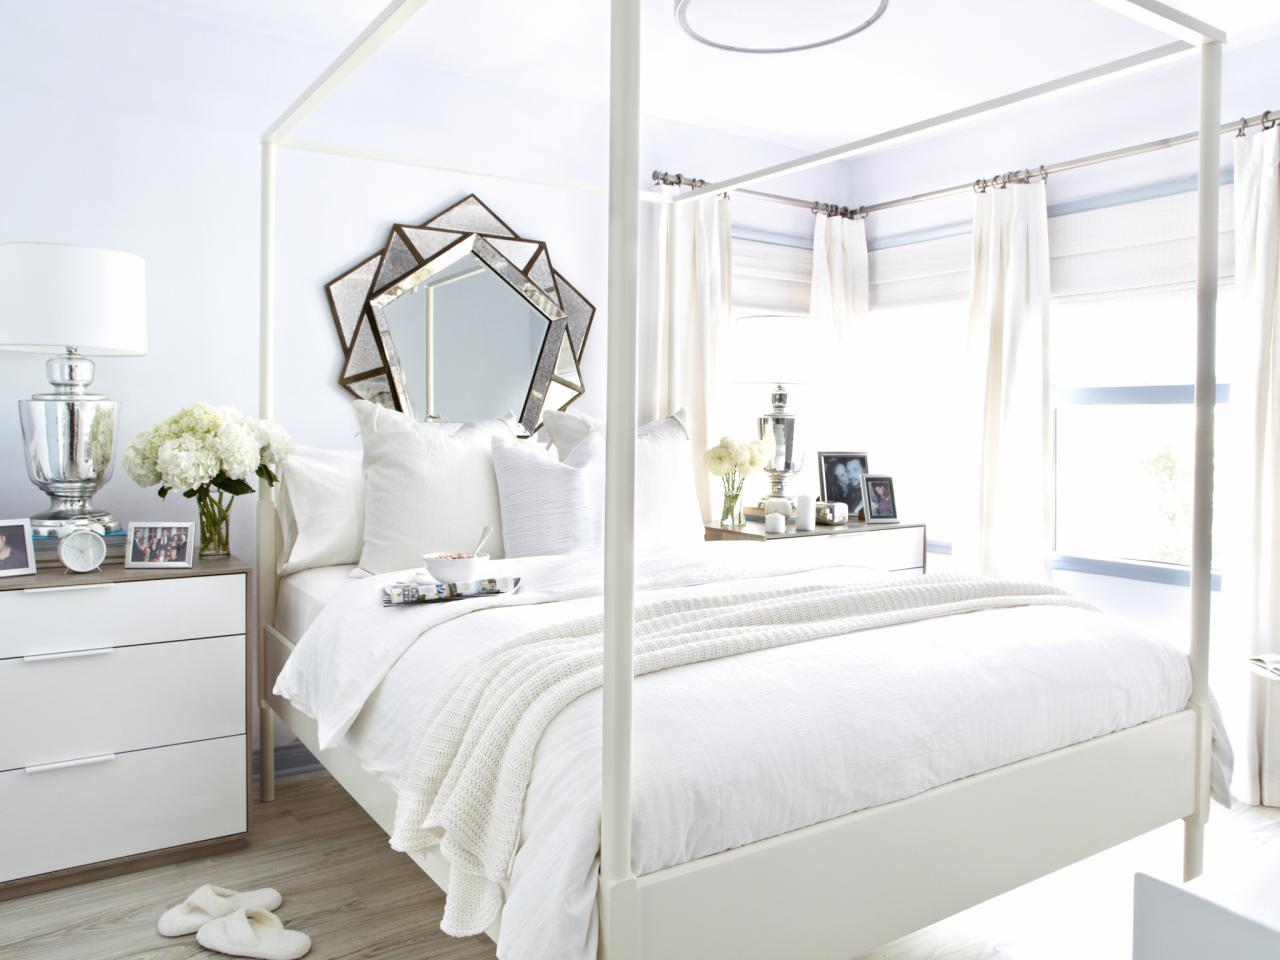 Hgtv shows how to make an all white room beautiful and How to make room attractive